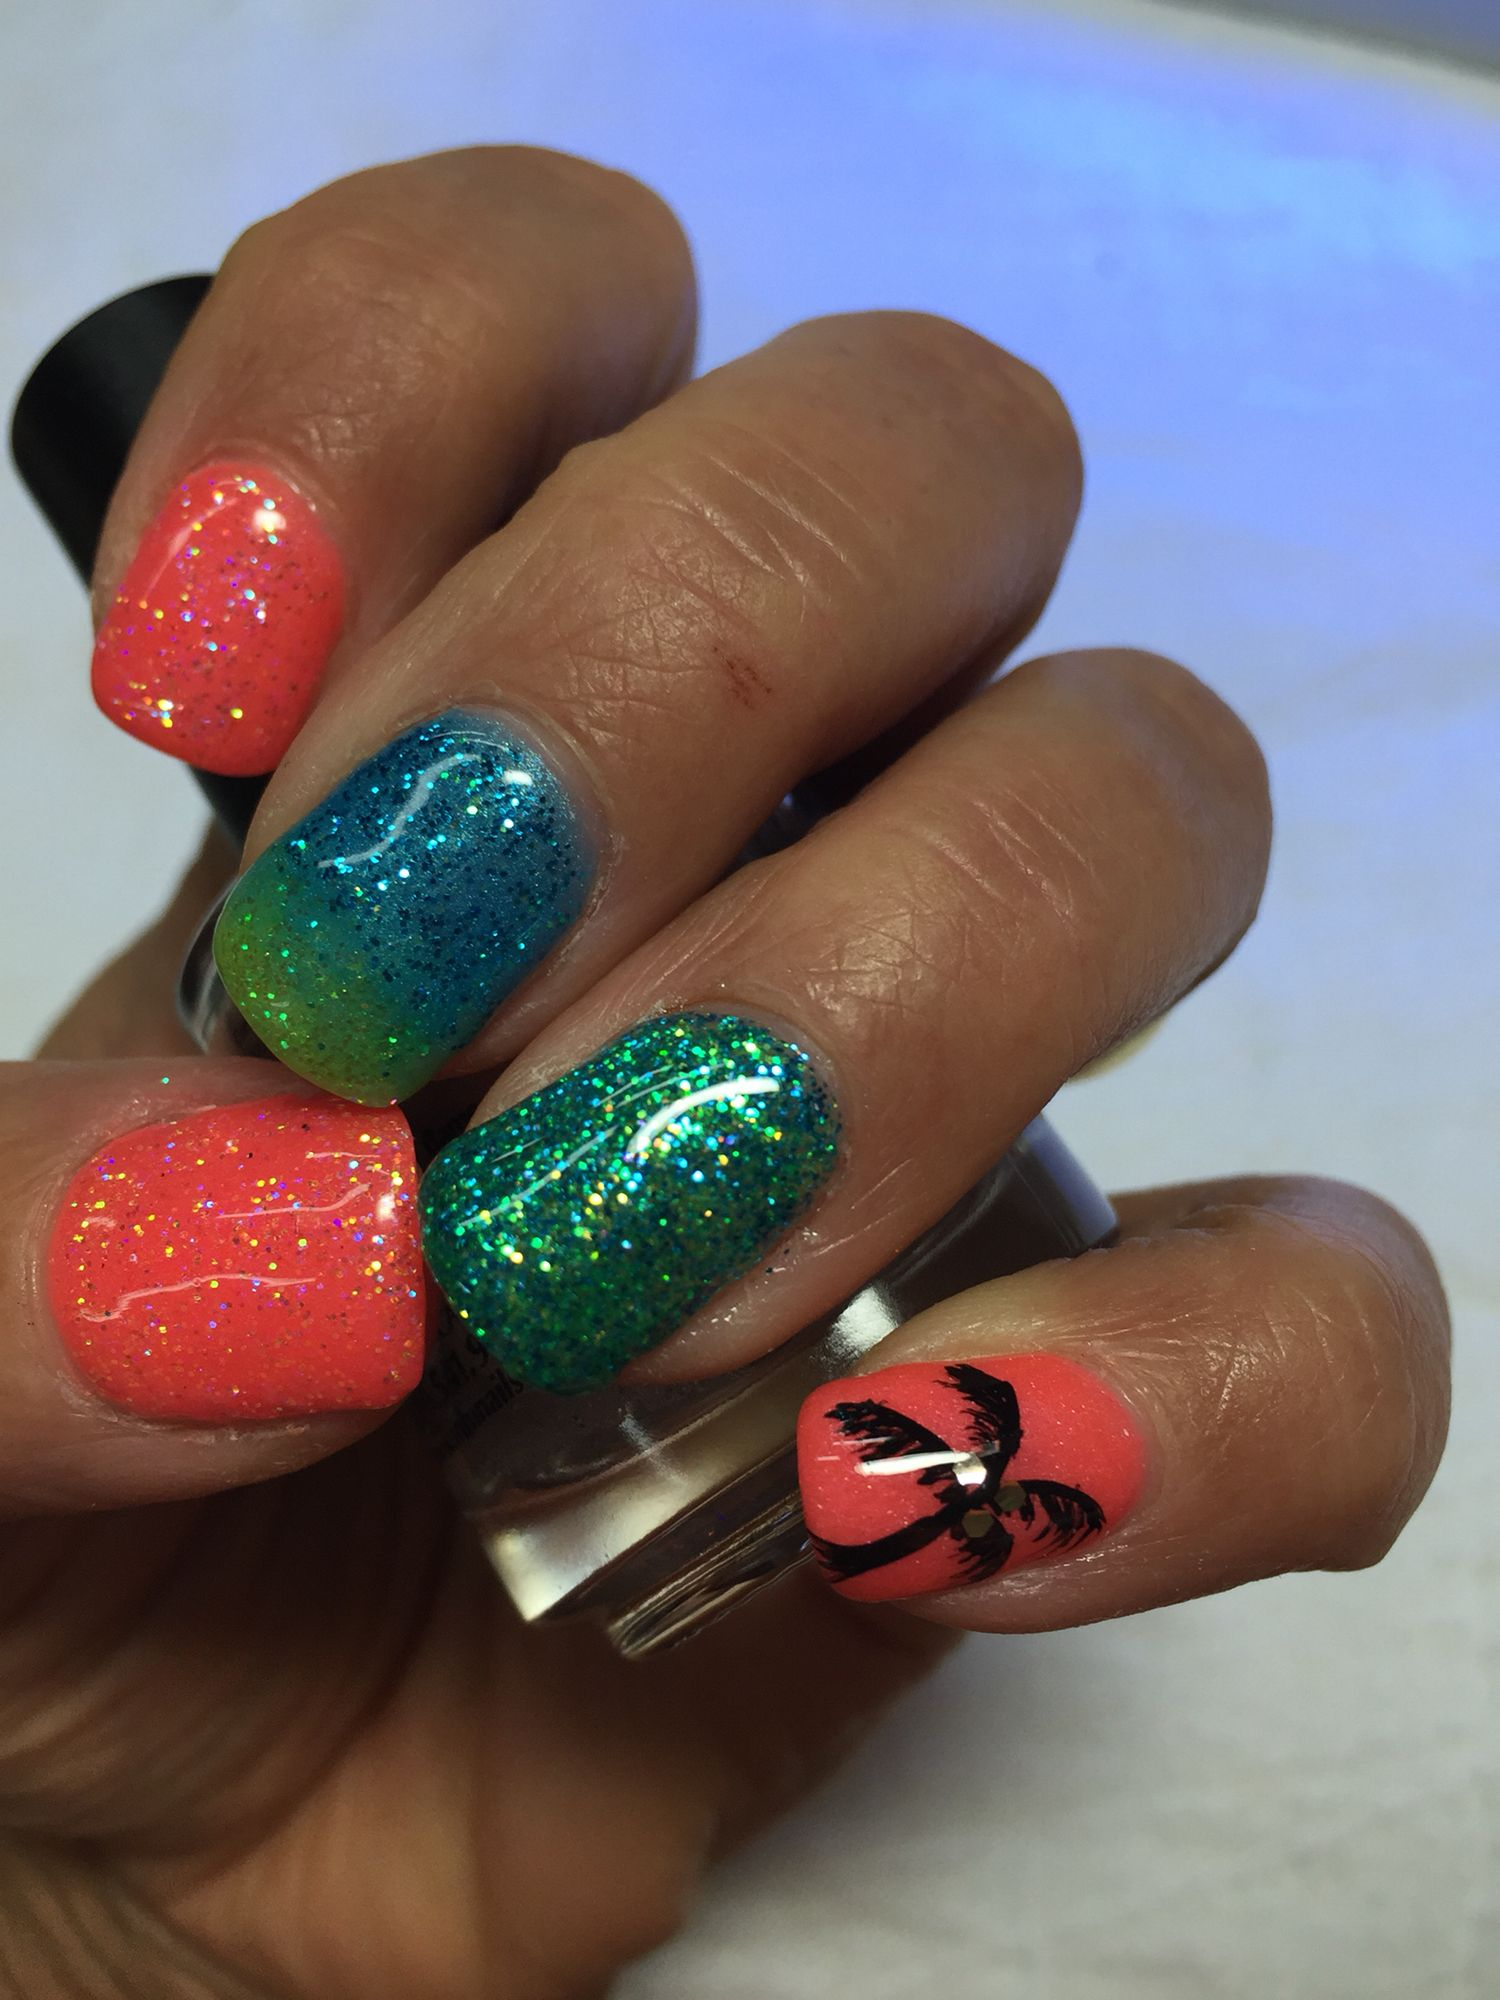 My vacation bright glittered summer colors and palm tree gel nails ...